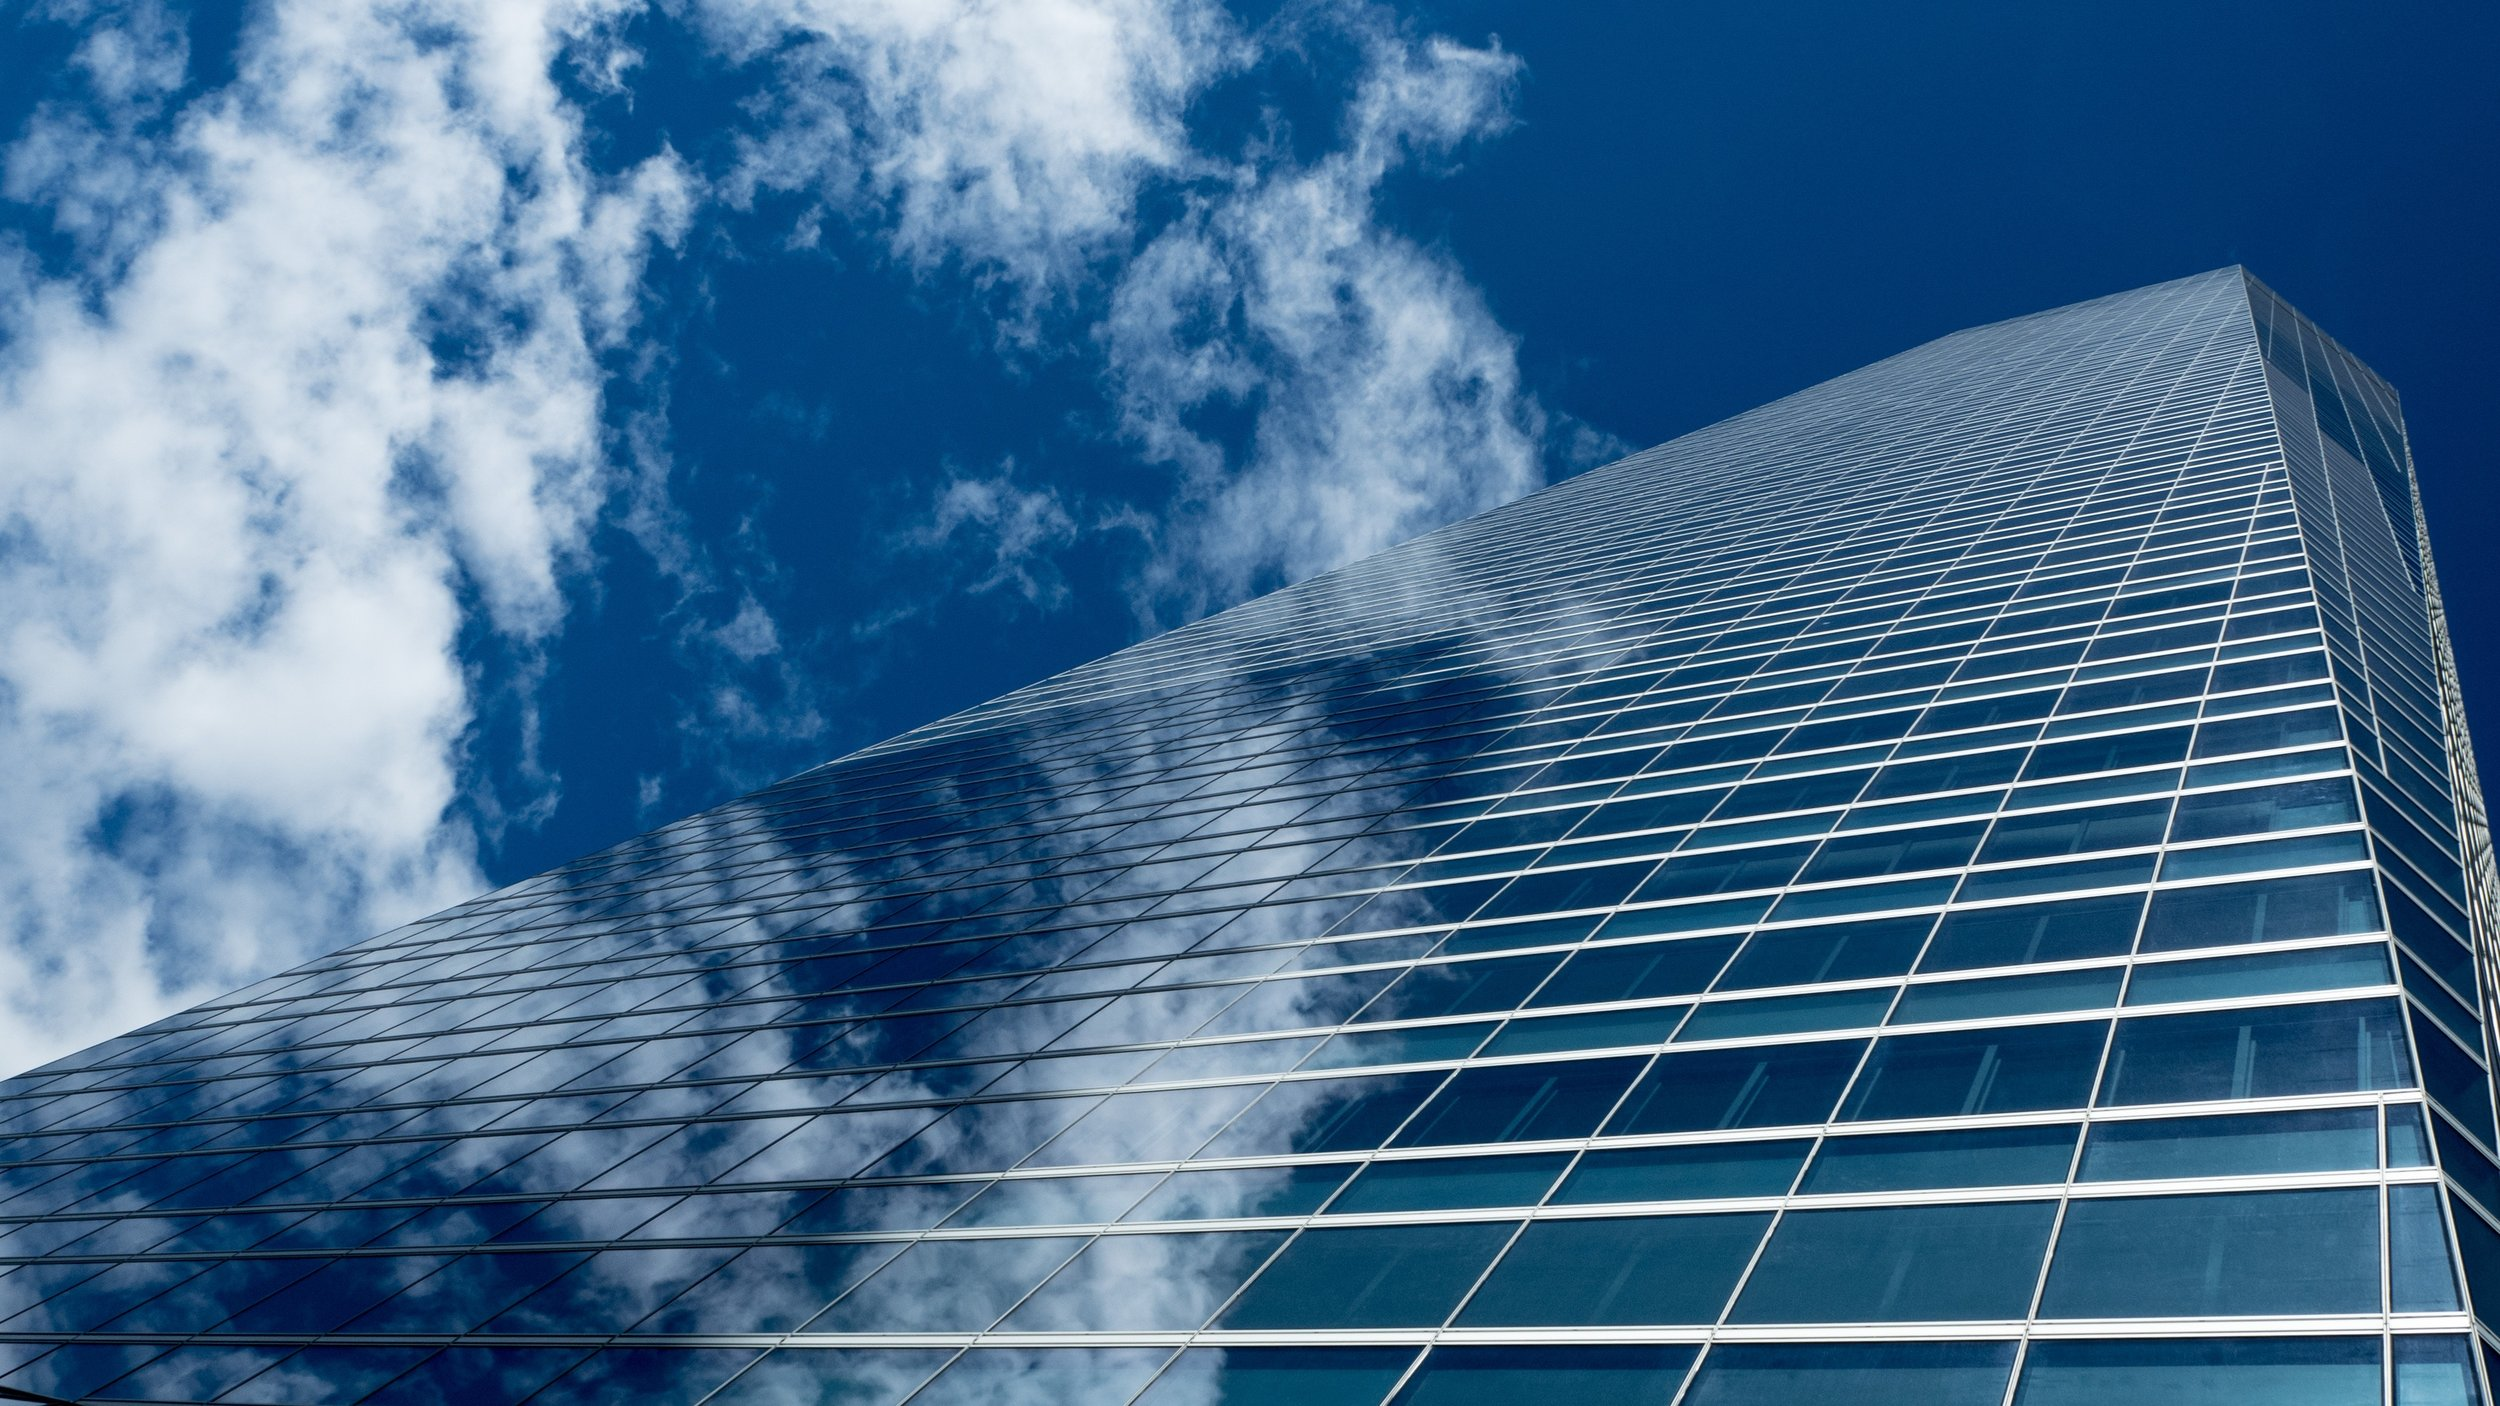 architecture-blue-sky-building-210598.jpg